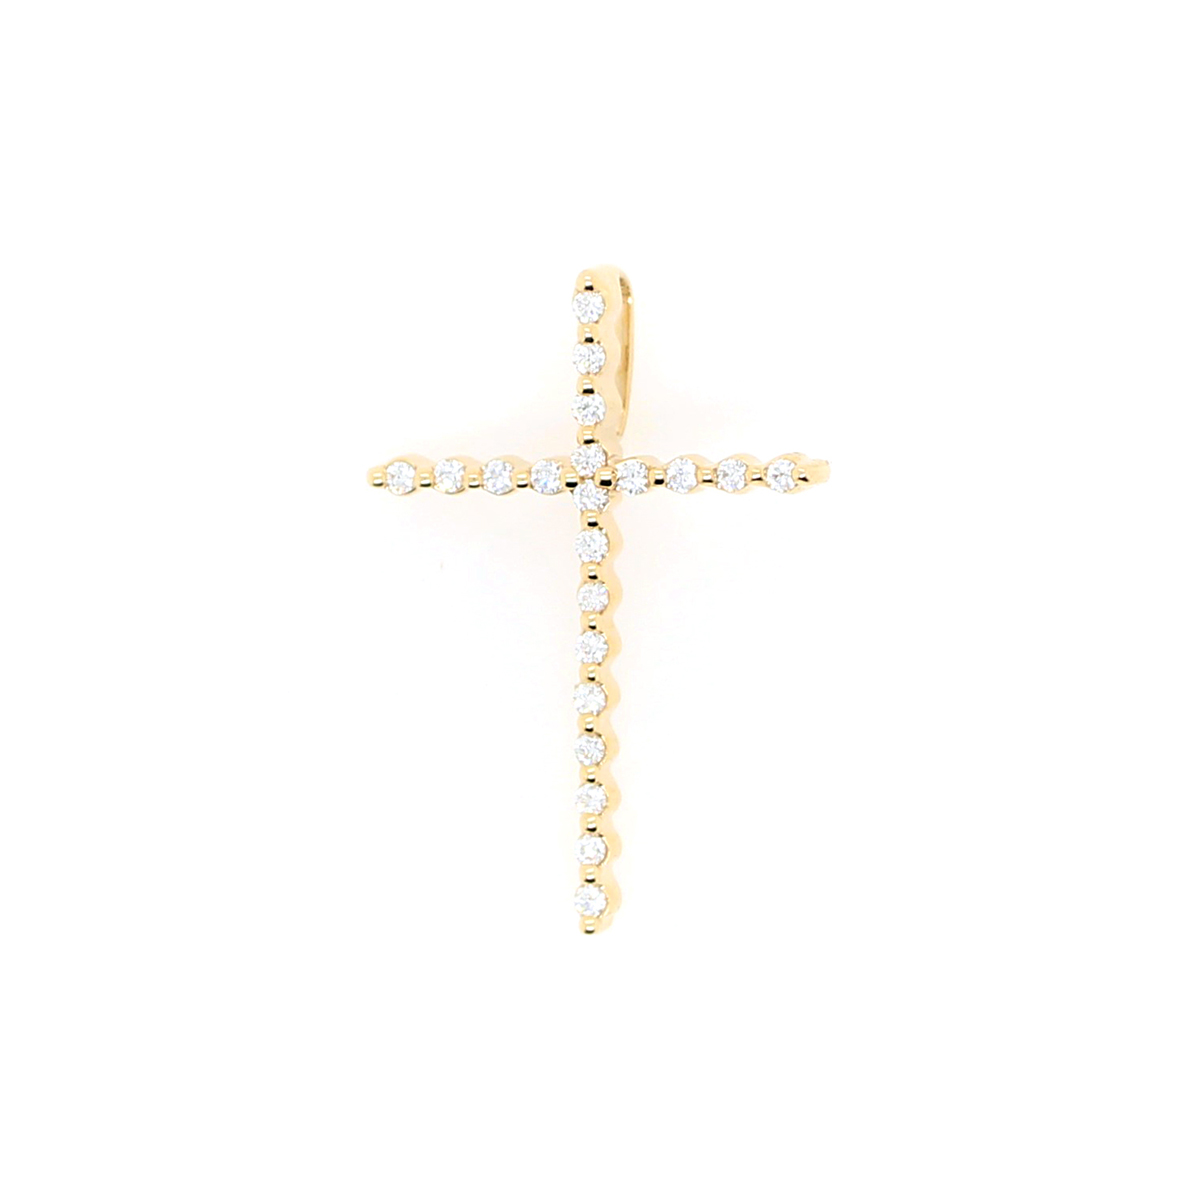 Shefi Diamonds 14 Karat Yellow Gold Diamond Cross Pendant